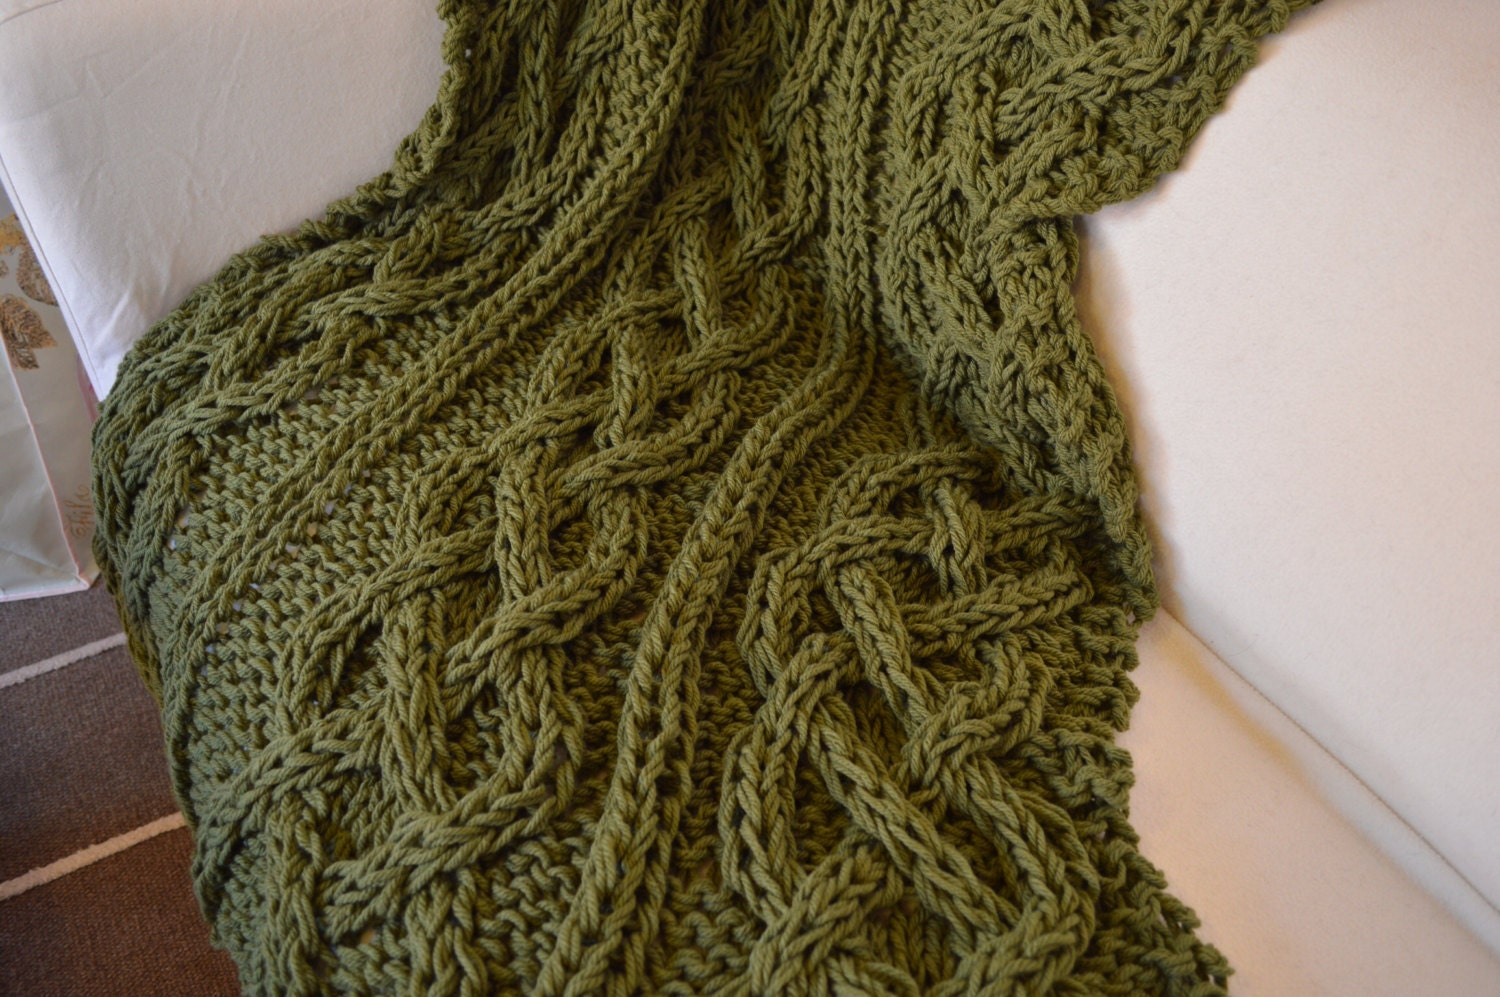 Chunky hand knitted cable blanket / throw Leaf Green